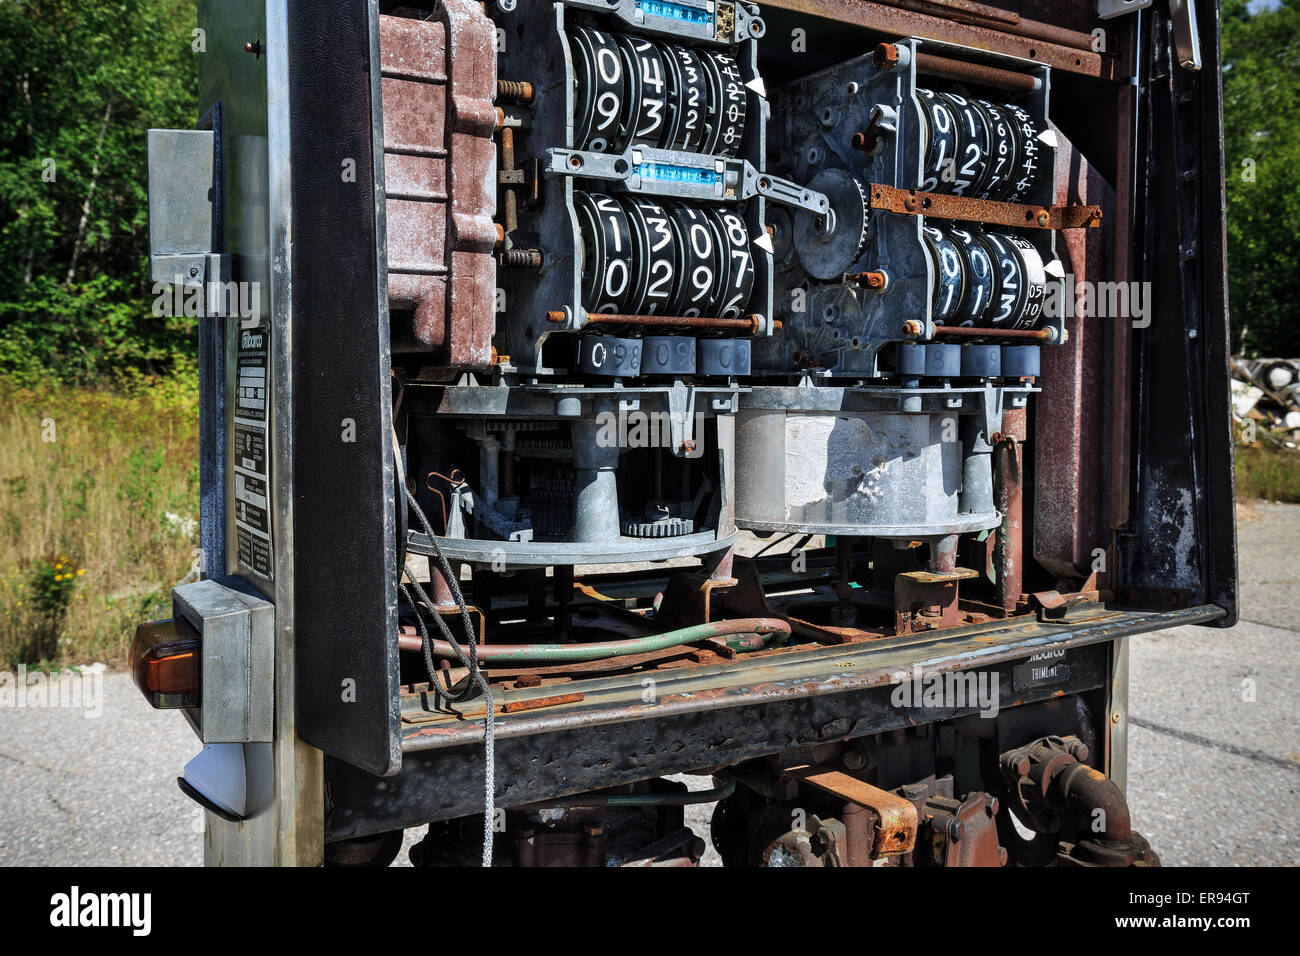 Abandoned gas pump - Stock Image